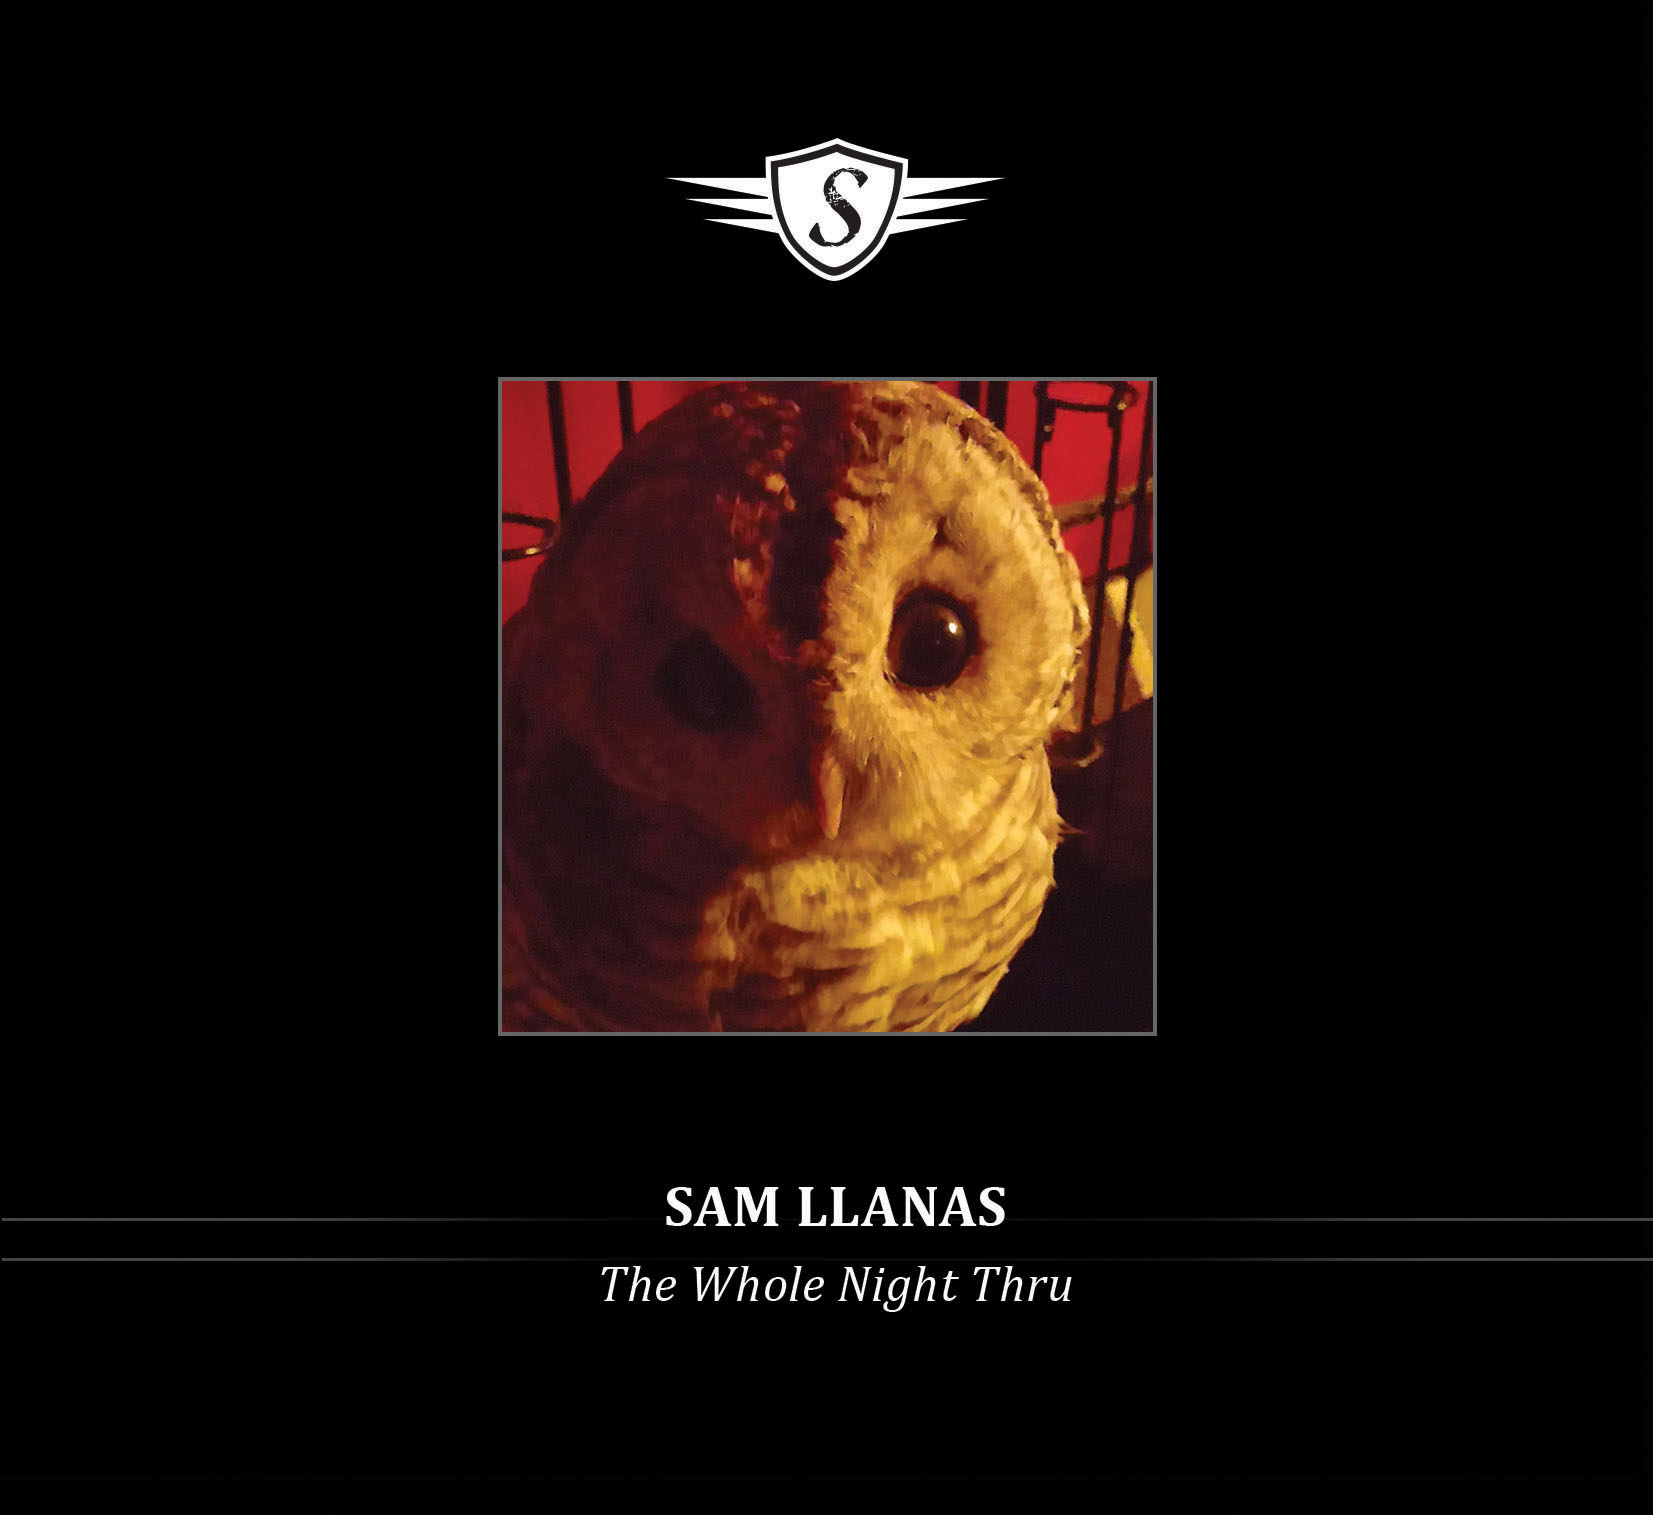 Welcome to the Official Sam Llanas Website!